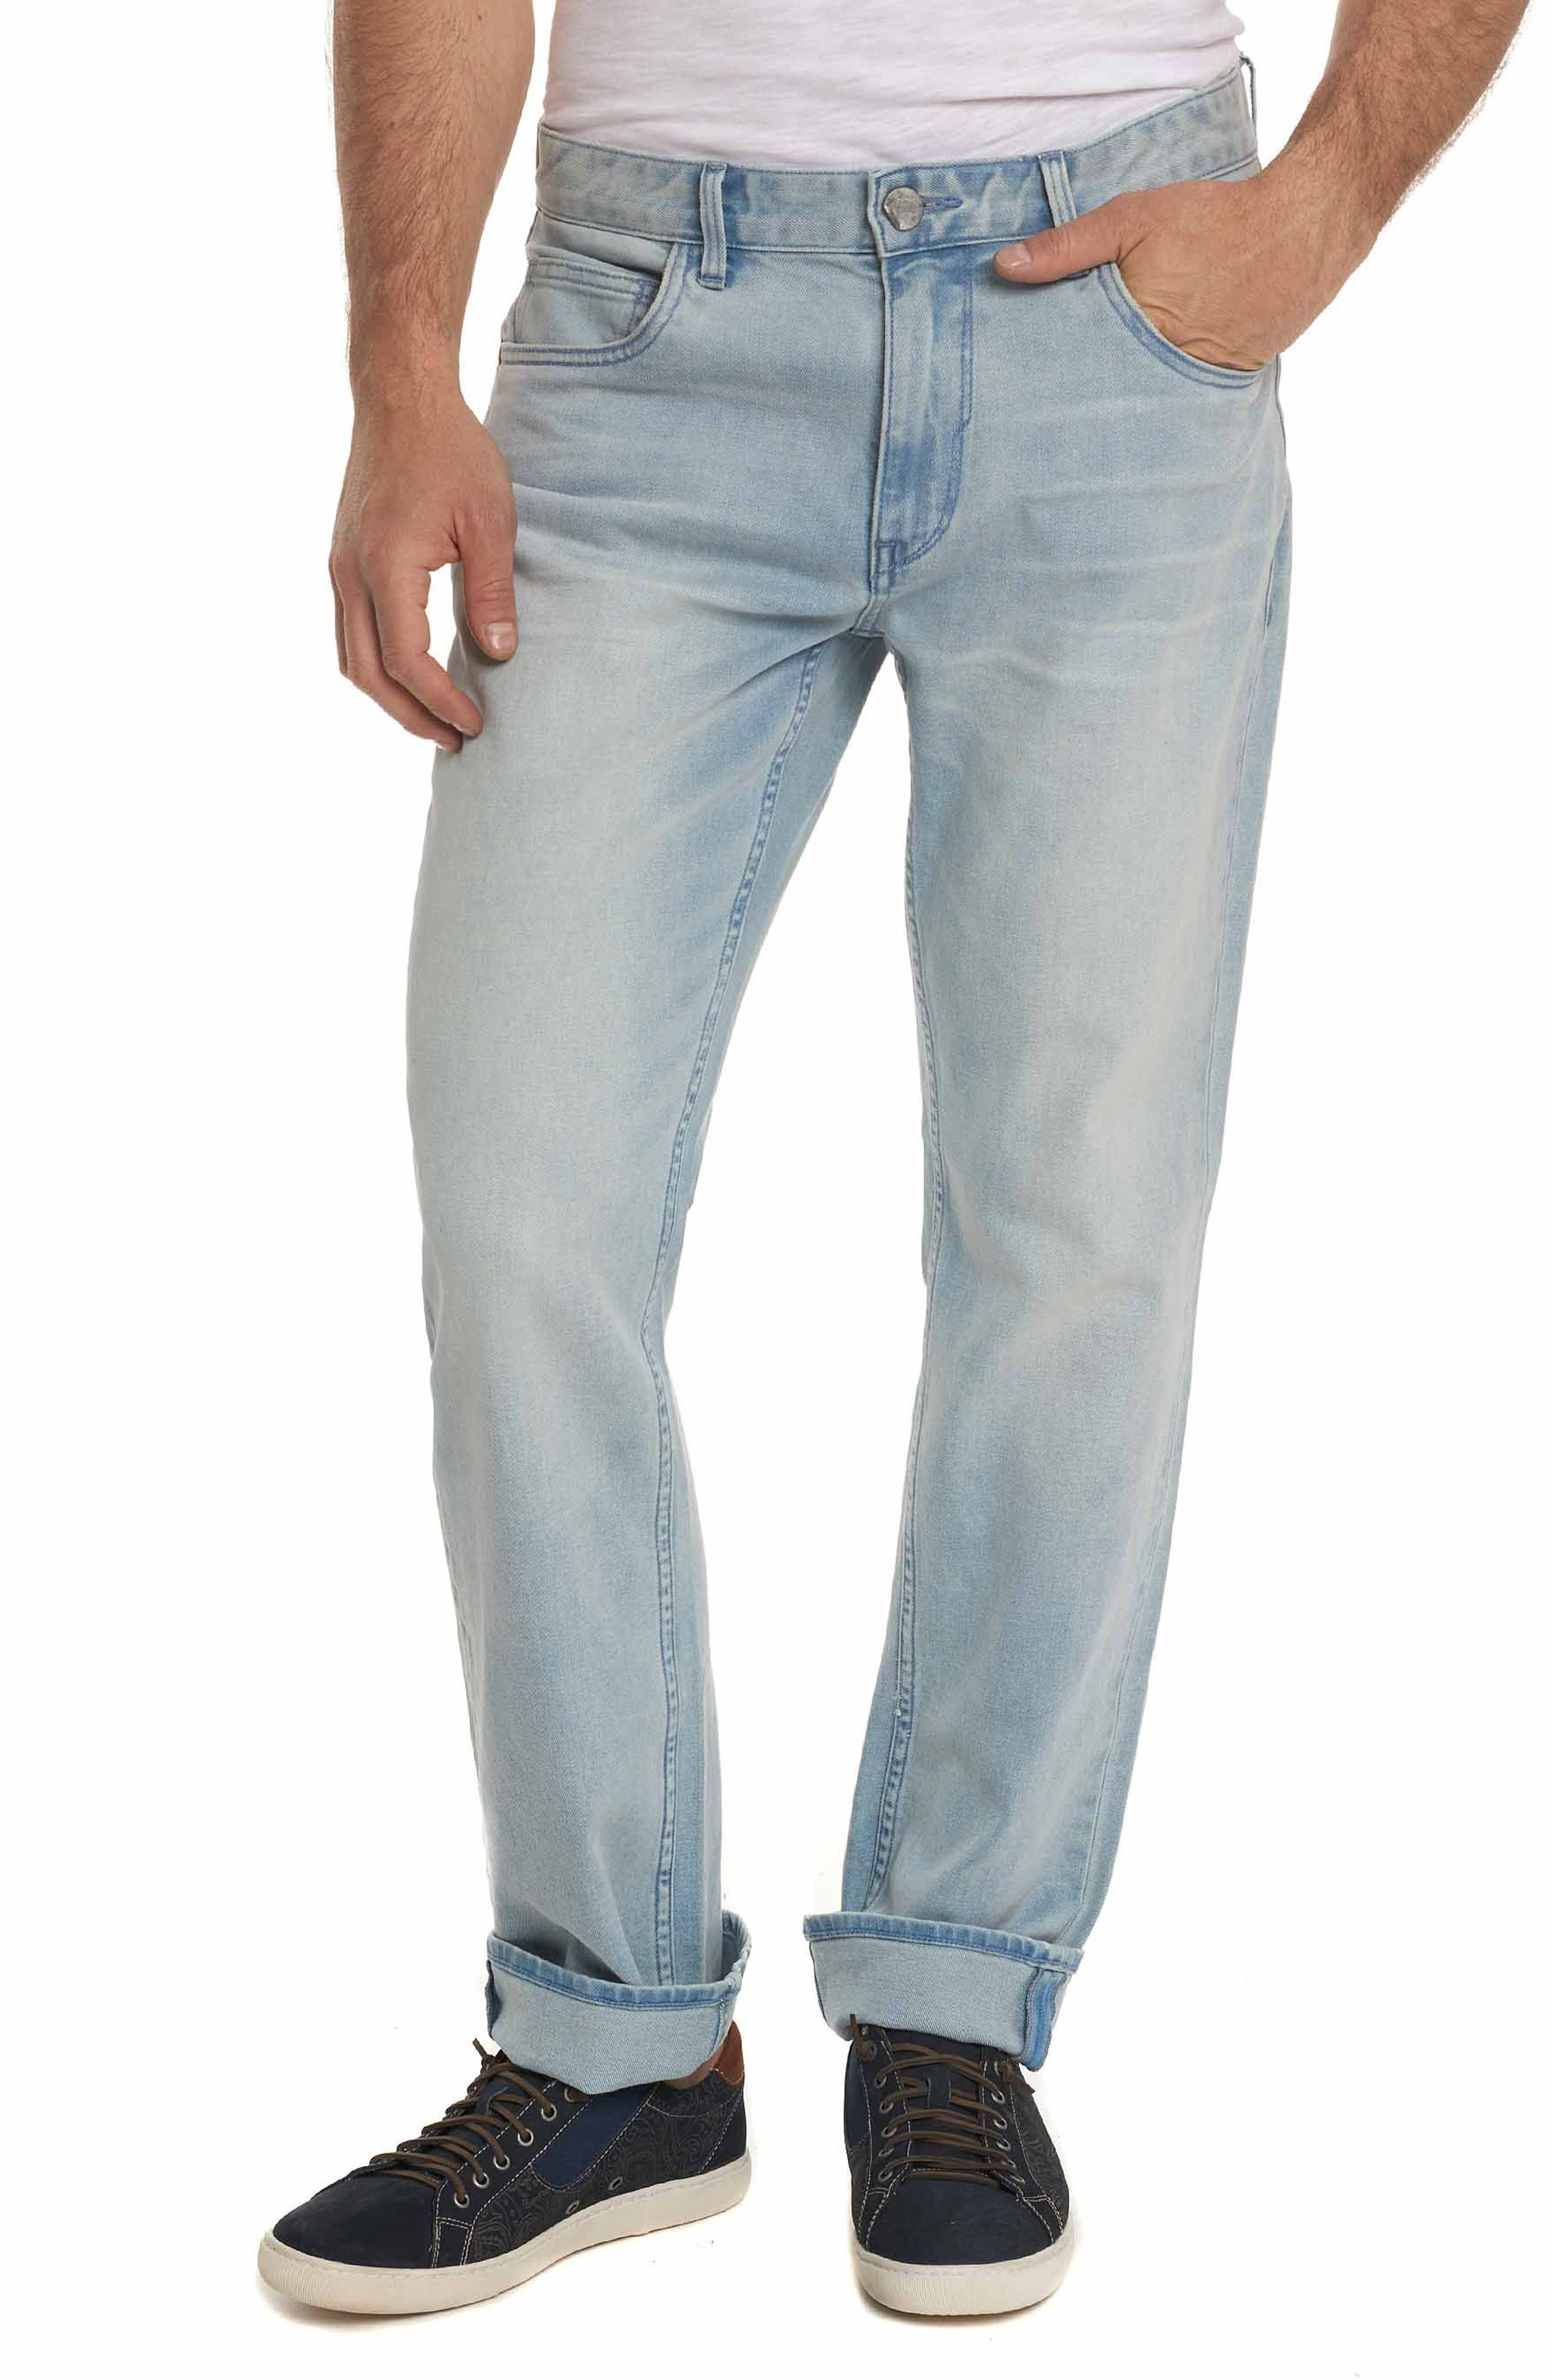 McFly Tailored Fit Jeans,                             Main thumbnail 1, color,                             LIGHT INDIGO